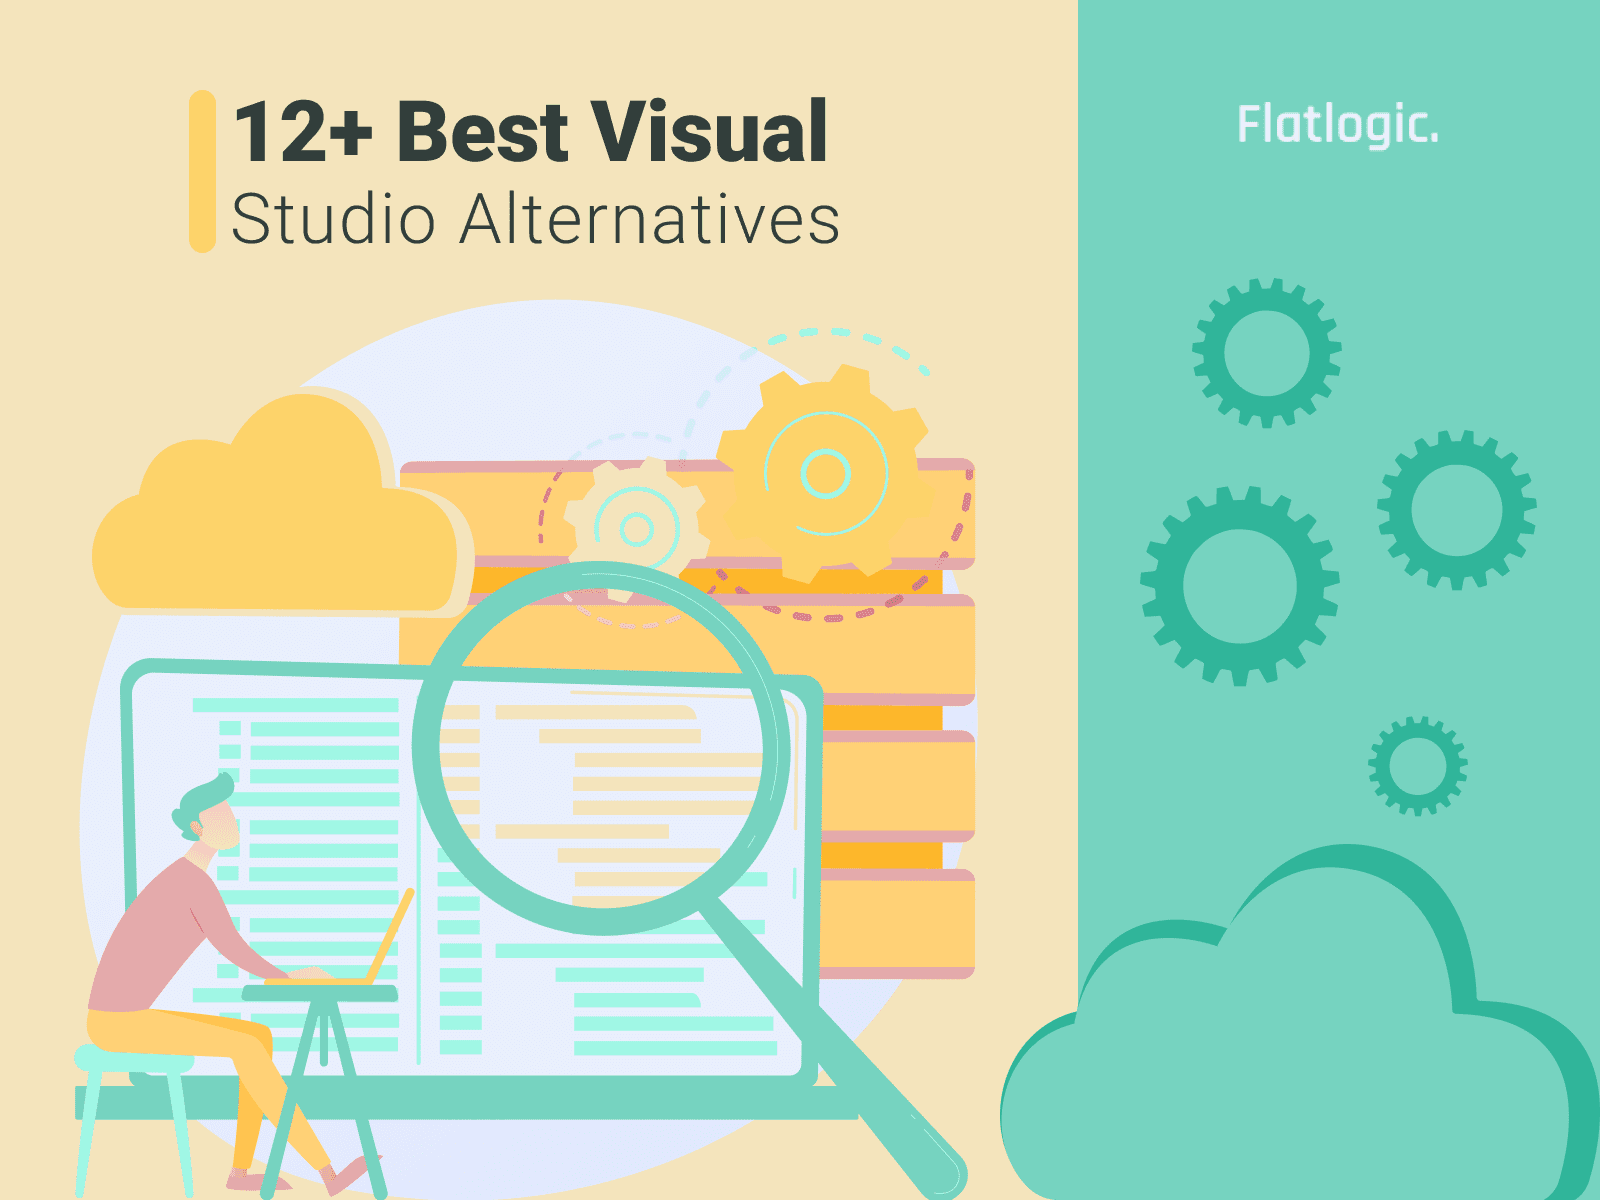 12+ Best Visual Studio Alternatives